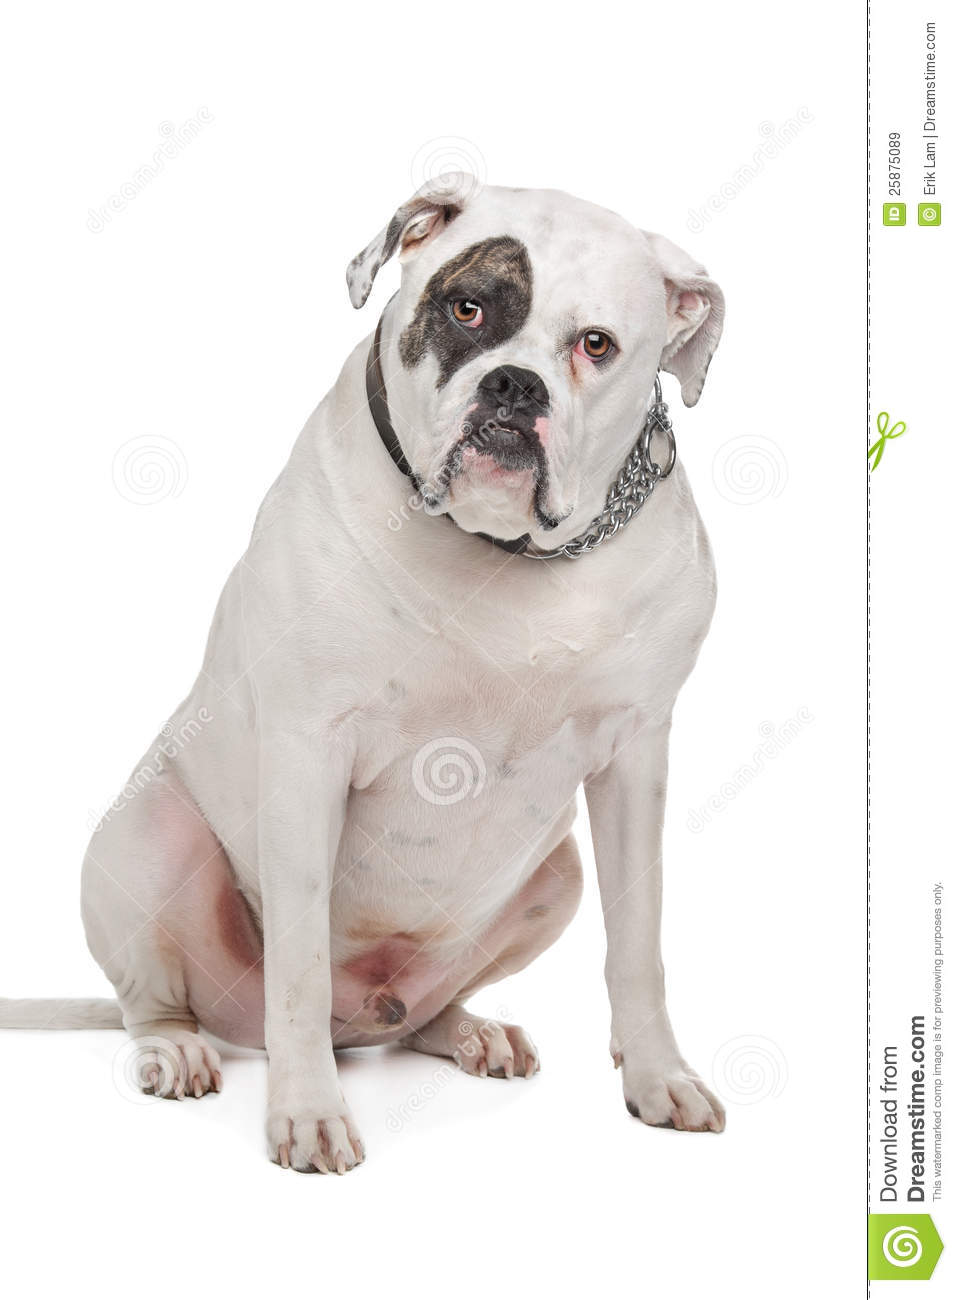 American bulldog vector - photo#21